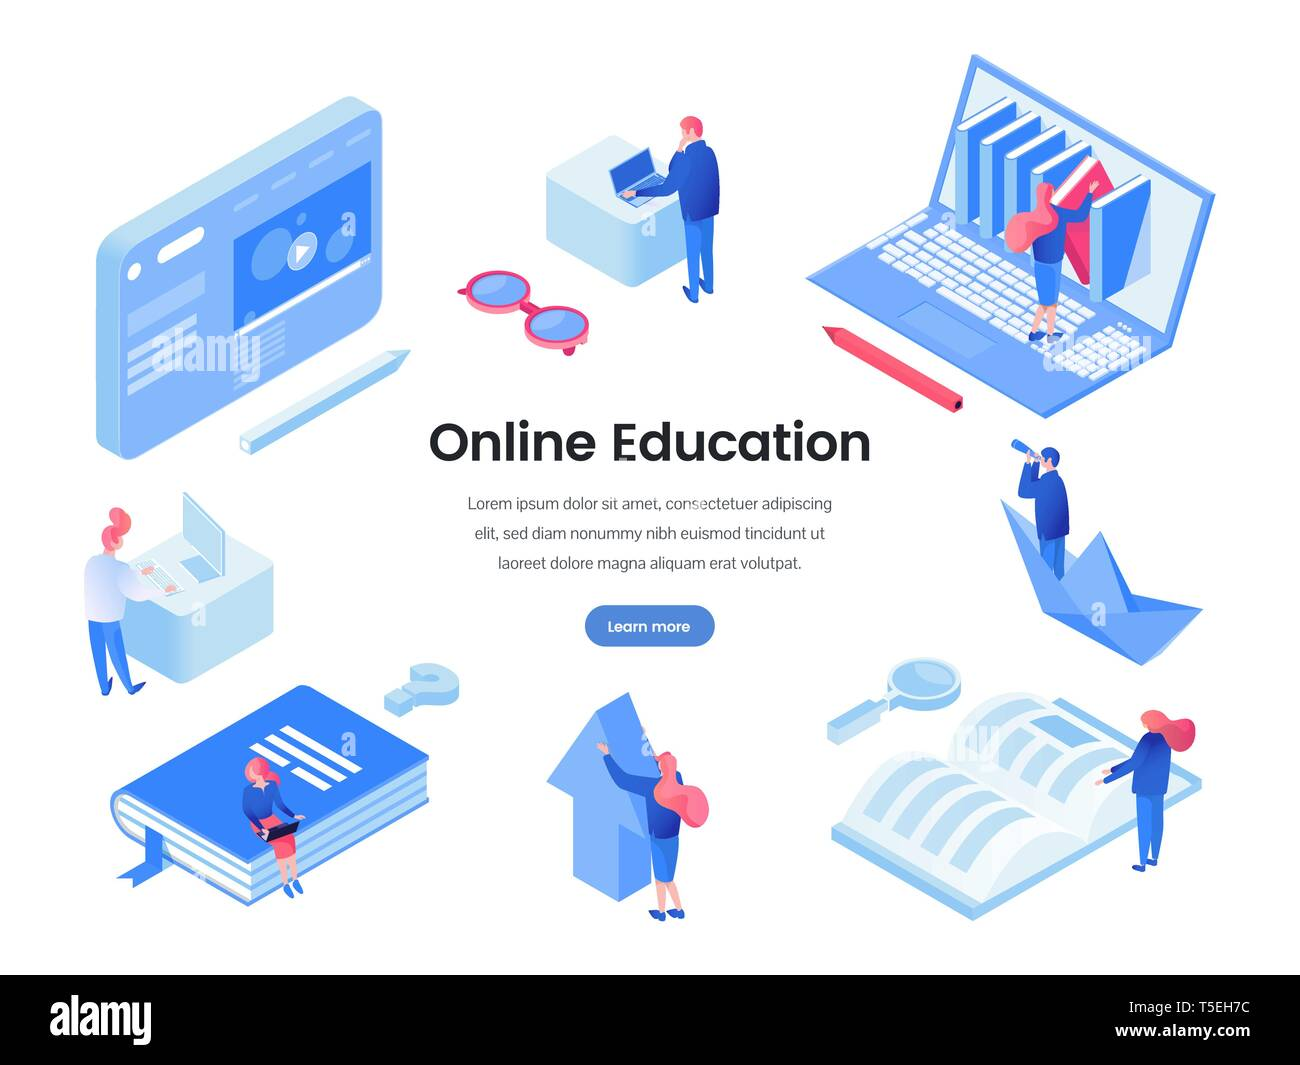 Online Courses Stock Photos & Online Courses Stock Images - Alamy